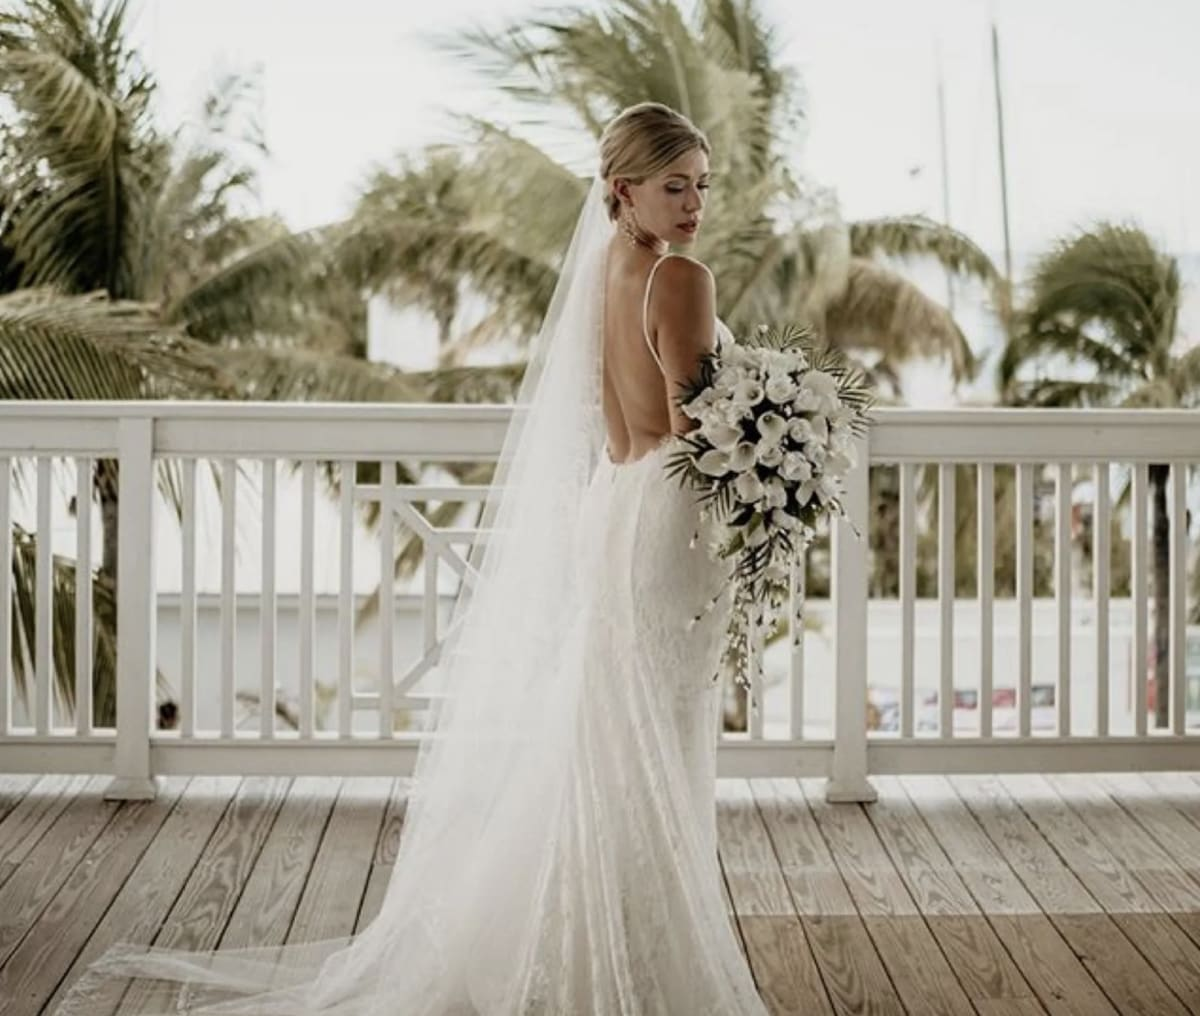 The Spotlight on a Simple Elegant Wedding in Key West